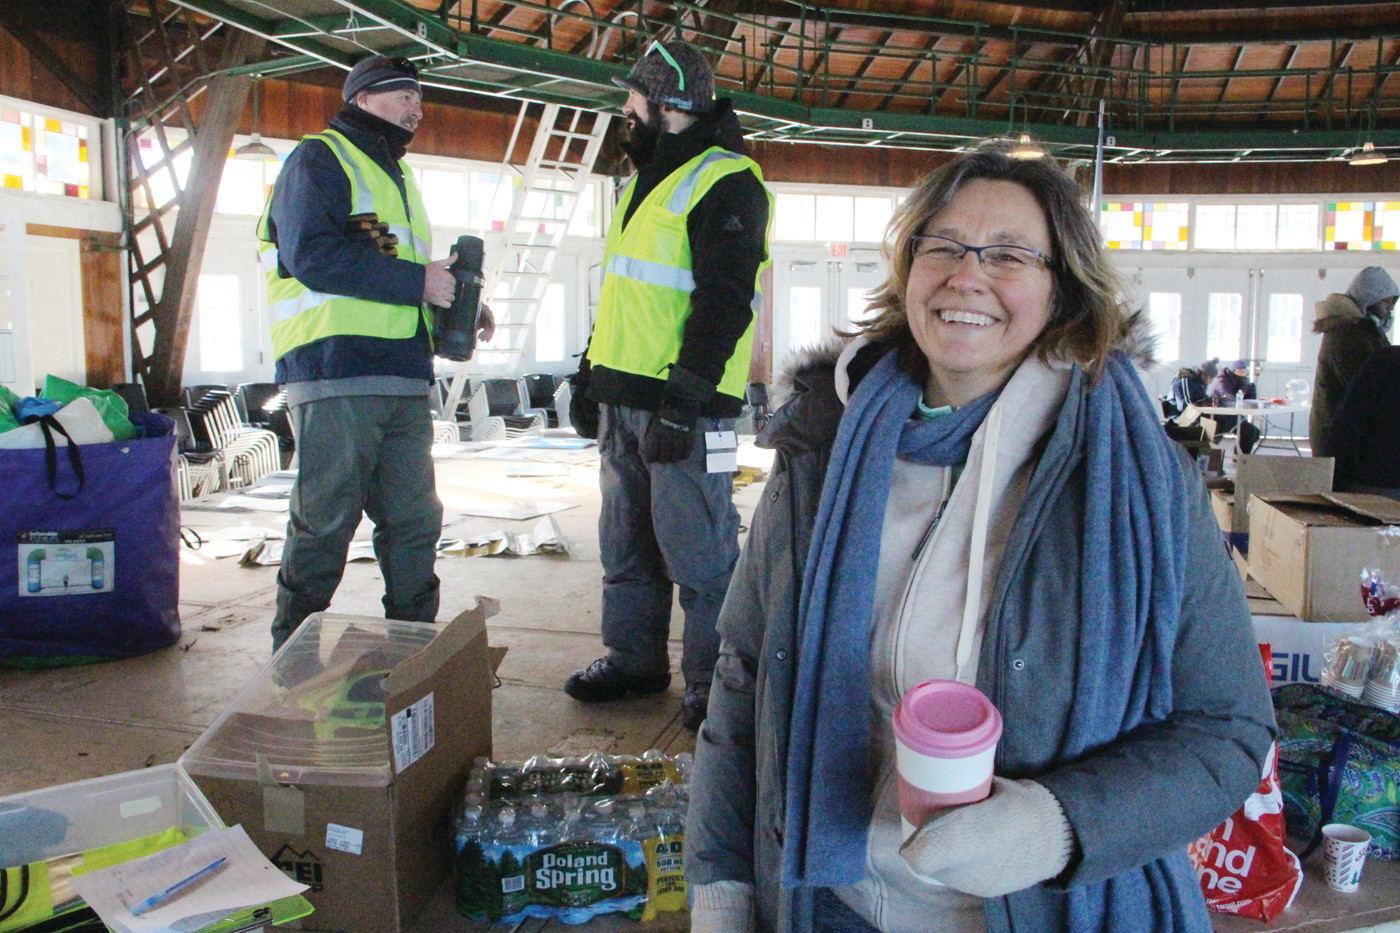 ALWAYS THE OPTIMIST: Jo-Ann Schofield, president and CEO of Mentor Rhode Island, gave a warm New Year's welcome to those braving the freeze. She's hopeful for warmed conditions on Jan. 28 that has tentatively been scheduled for the Frozen Clam Dip.